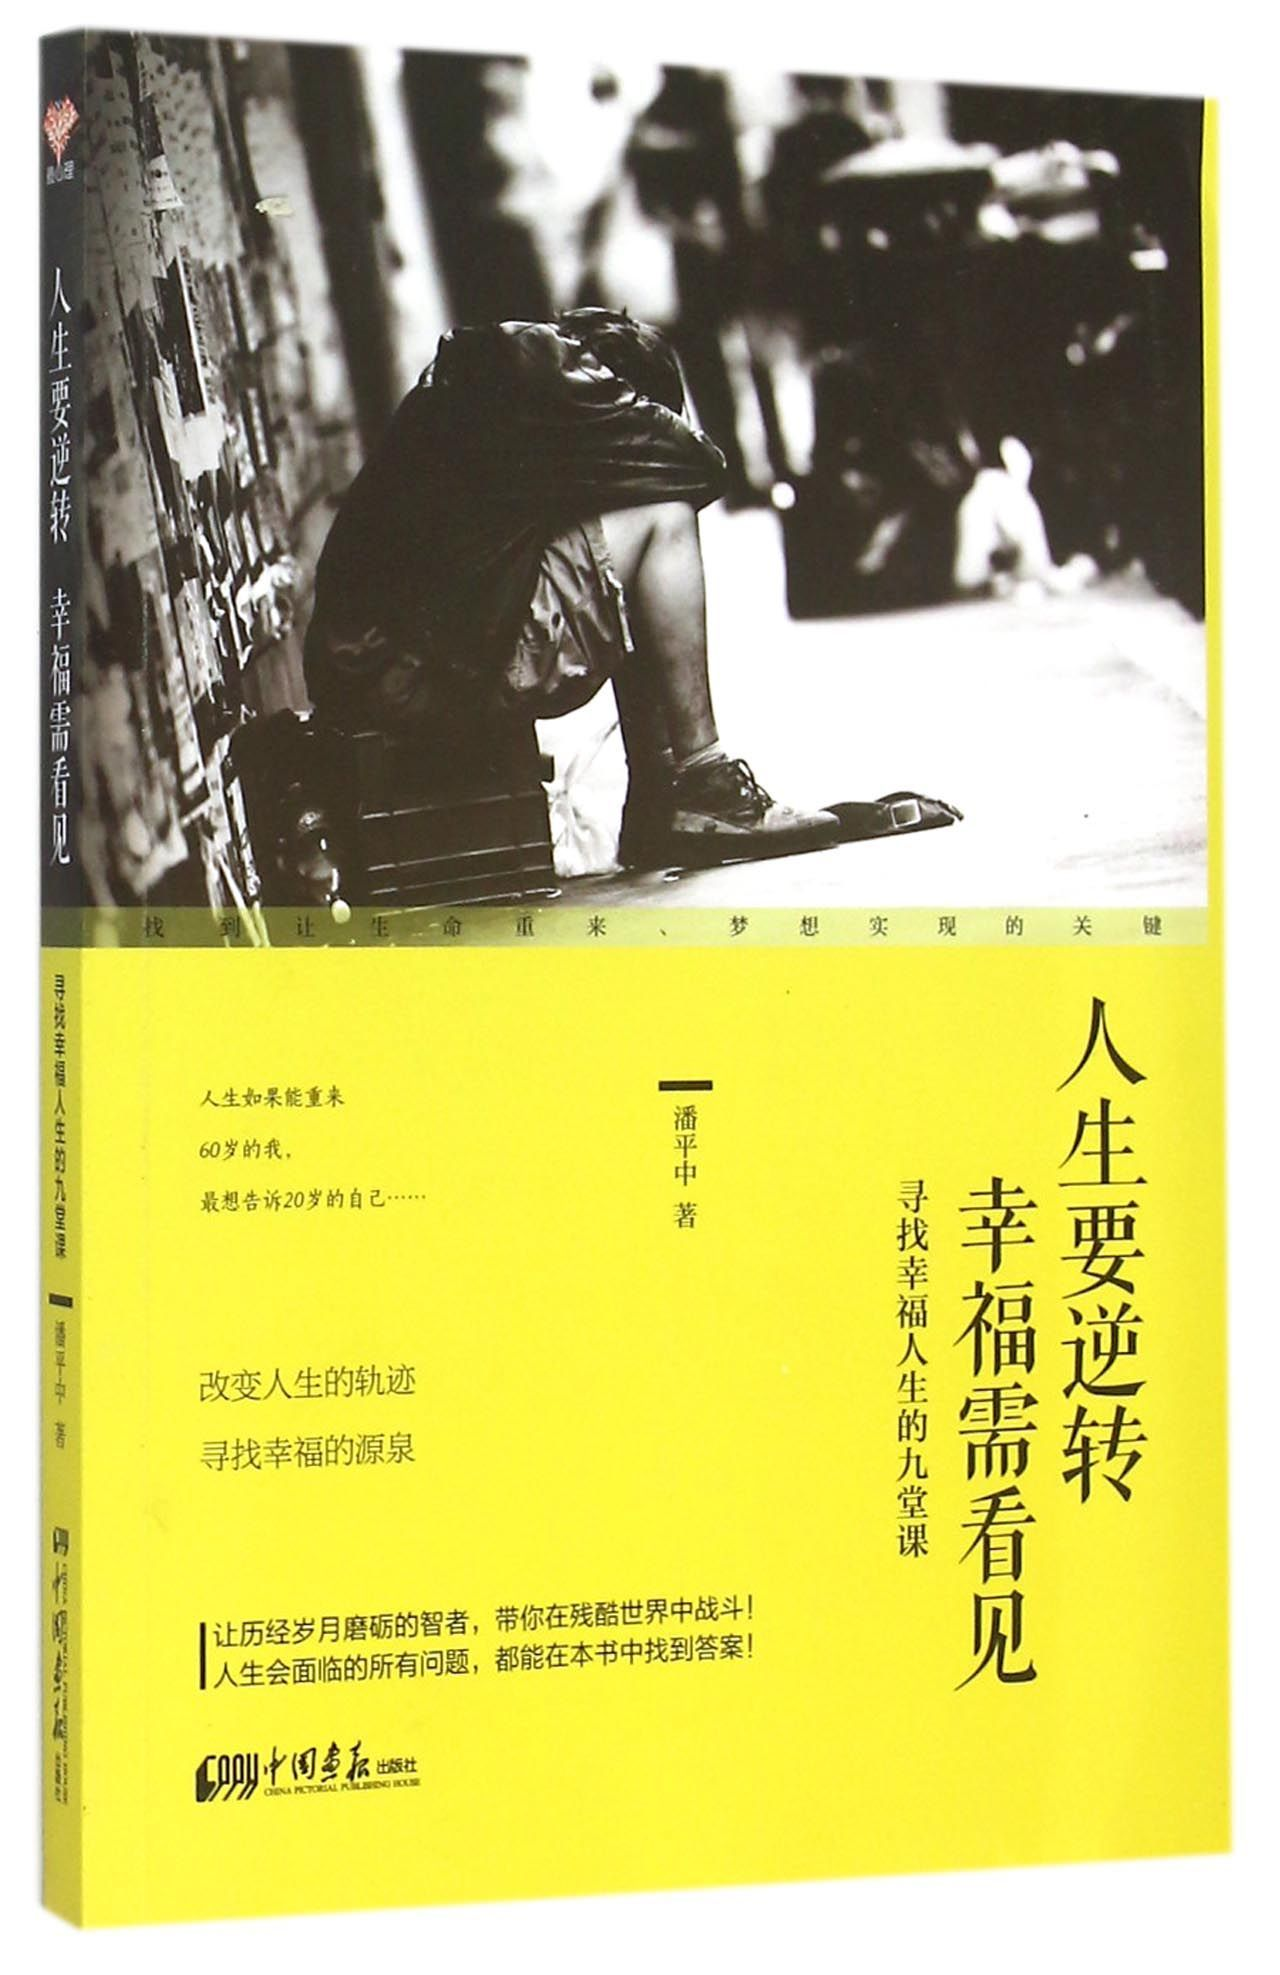 9 Lessons to Find Your Happiness人生要逆转幸福需看见 Pan Ping Zhong潘平中